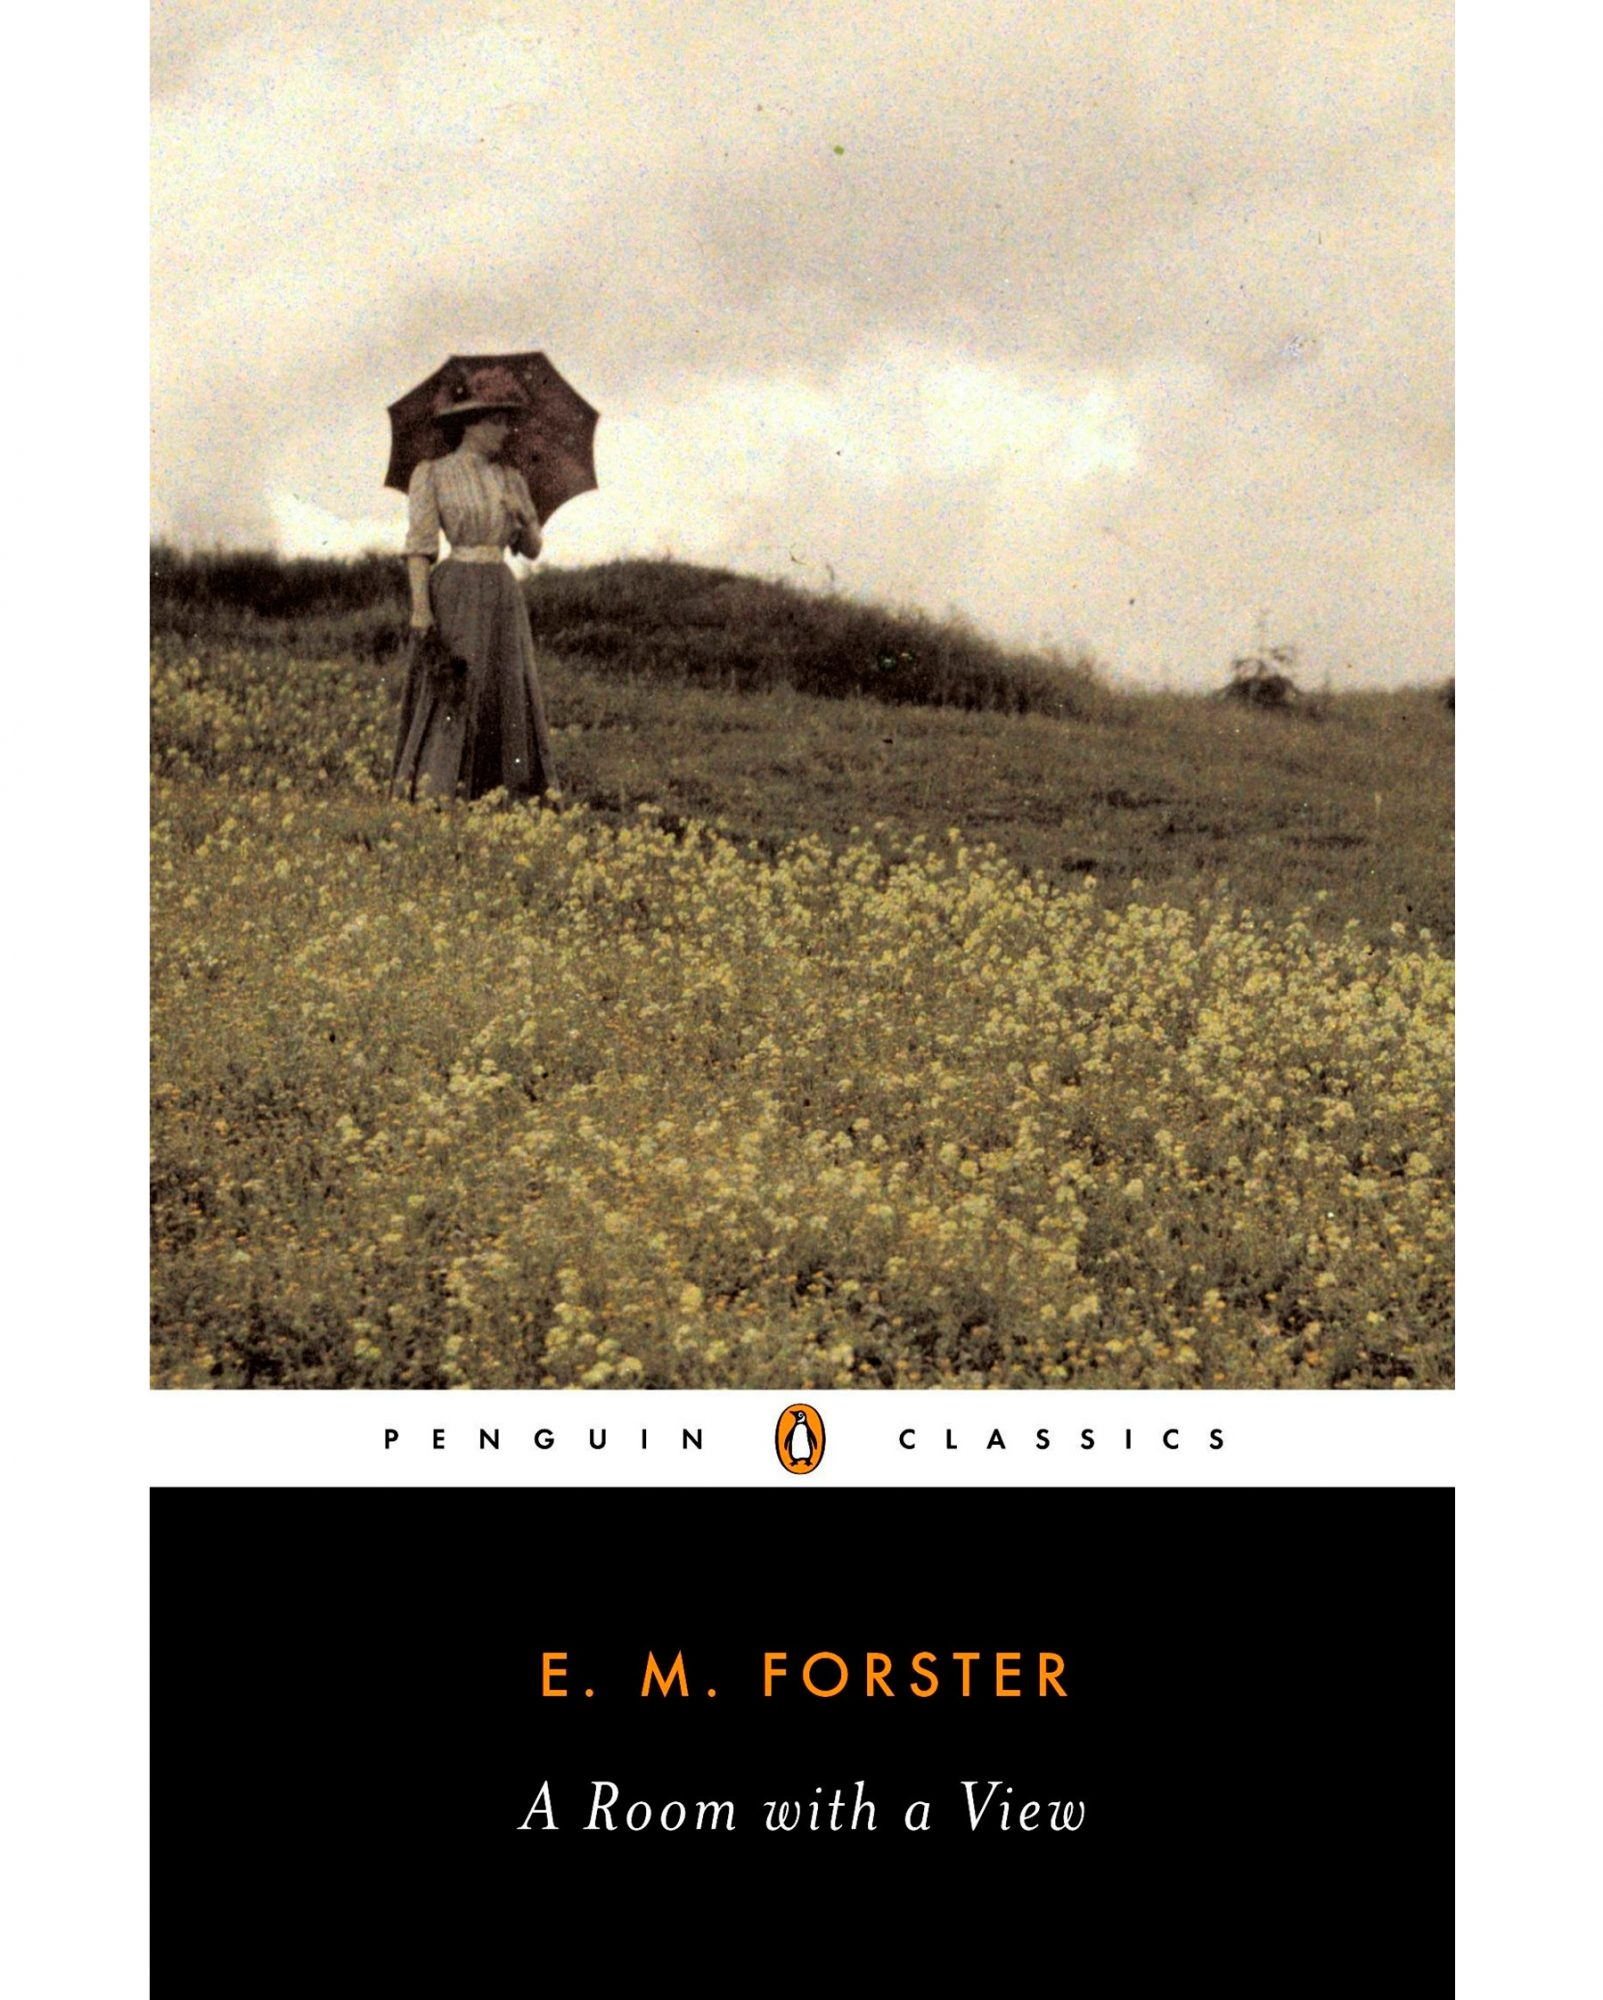 """A Room With a View"" by E. M. Forster"